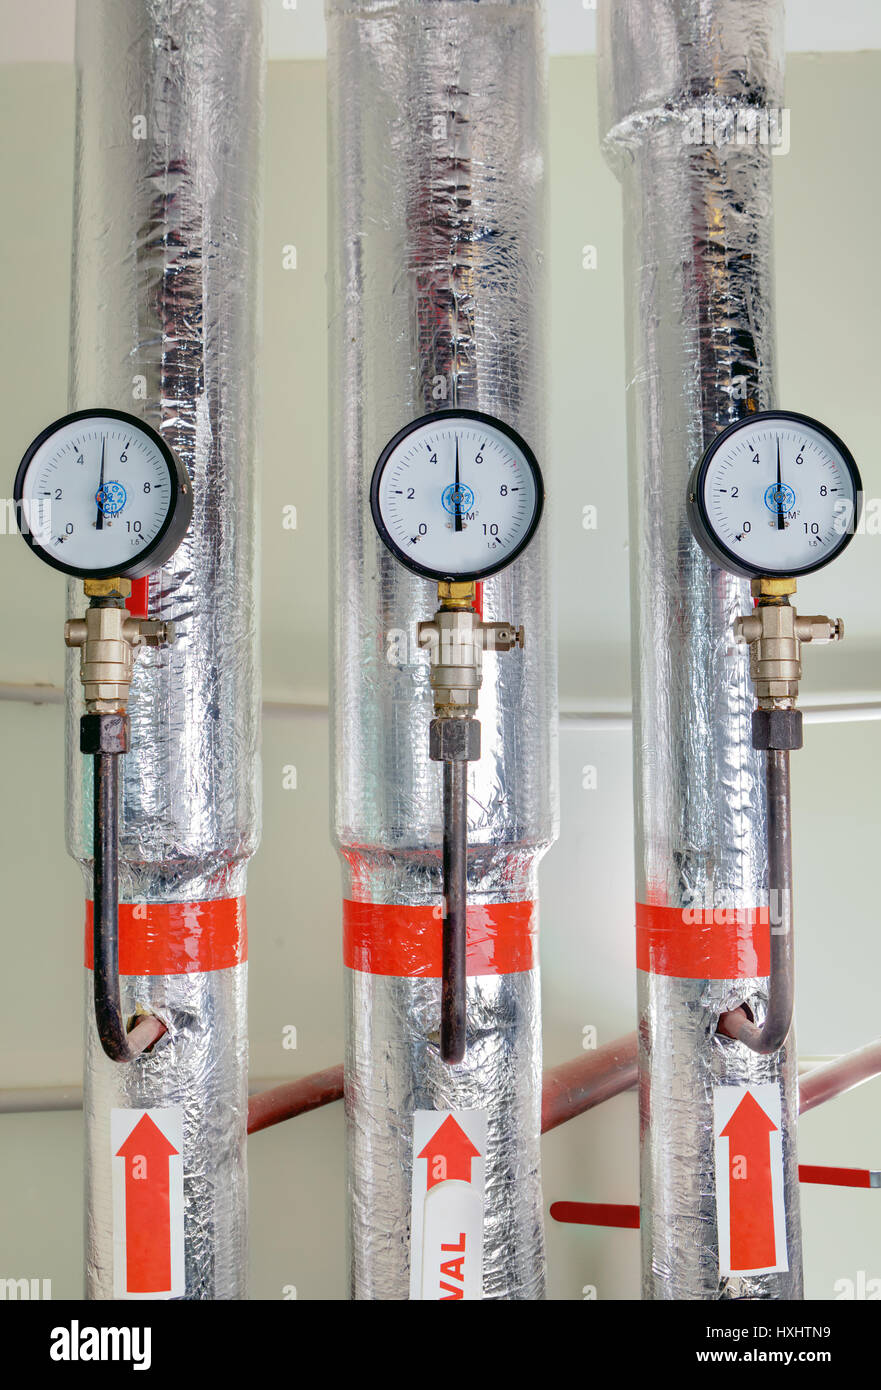 Three Pressure Gauge In A Boiler Room Next To The Hot